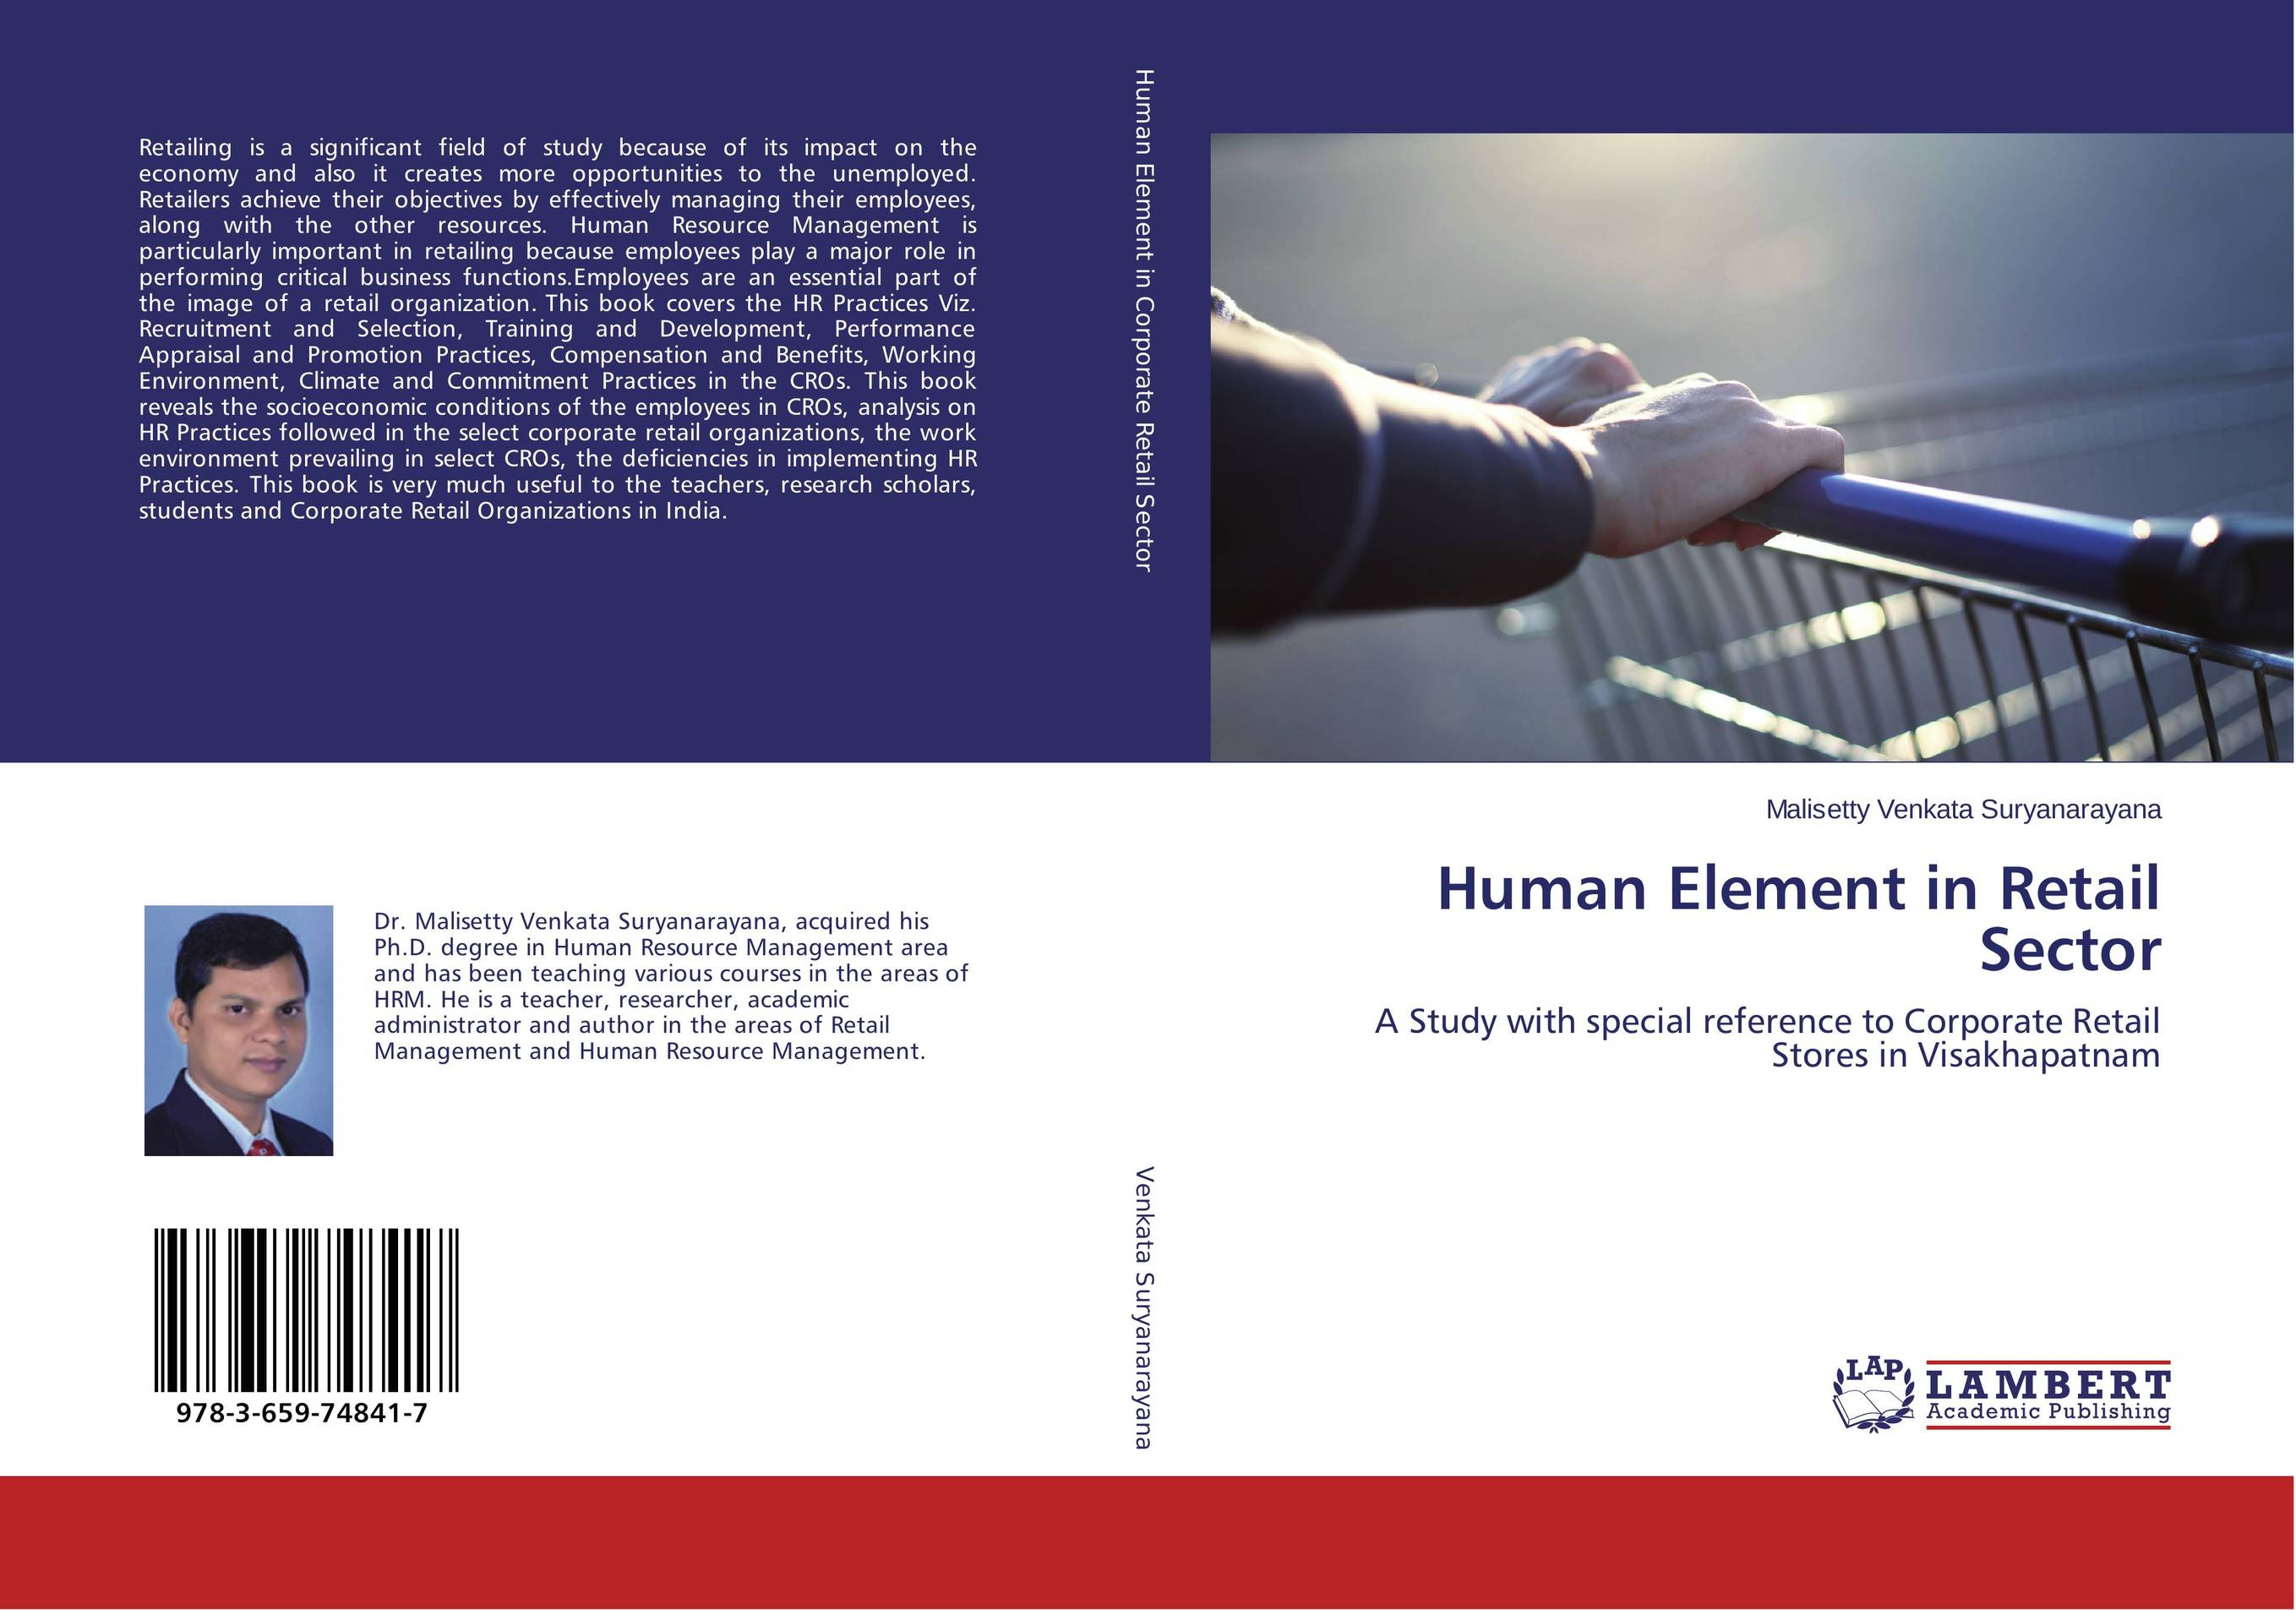 Human Element in Retail Sector human element in retail sector